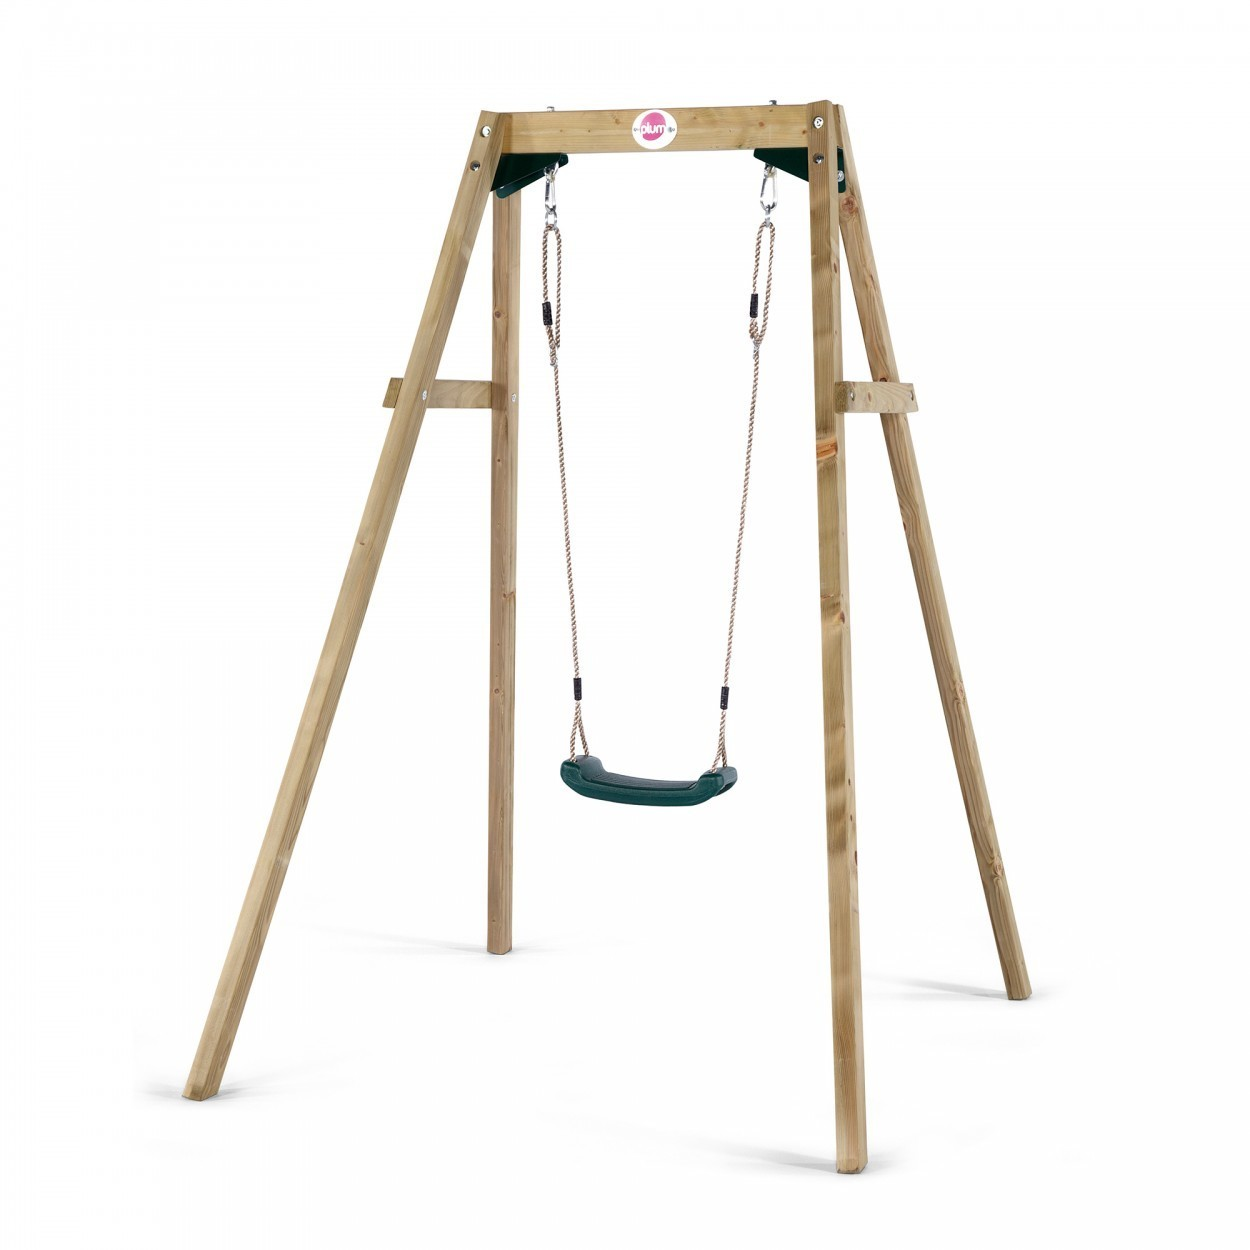 Plum Wooden Single Swing